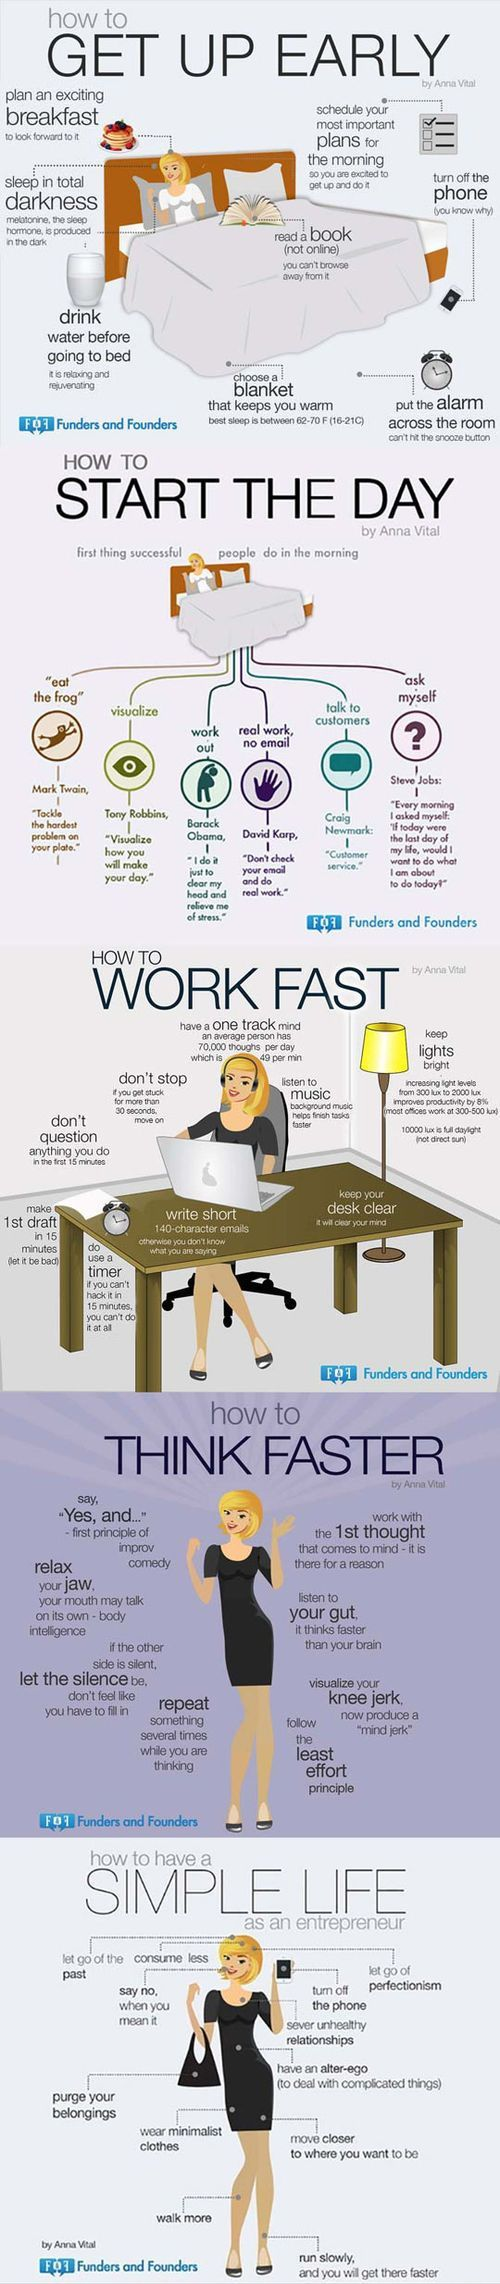 tips Infographic Perfect for Monday